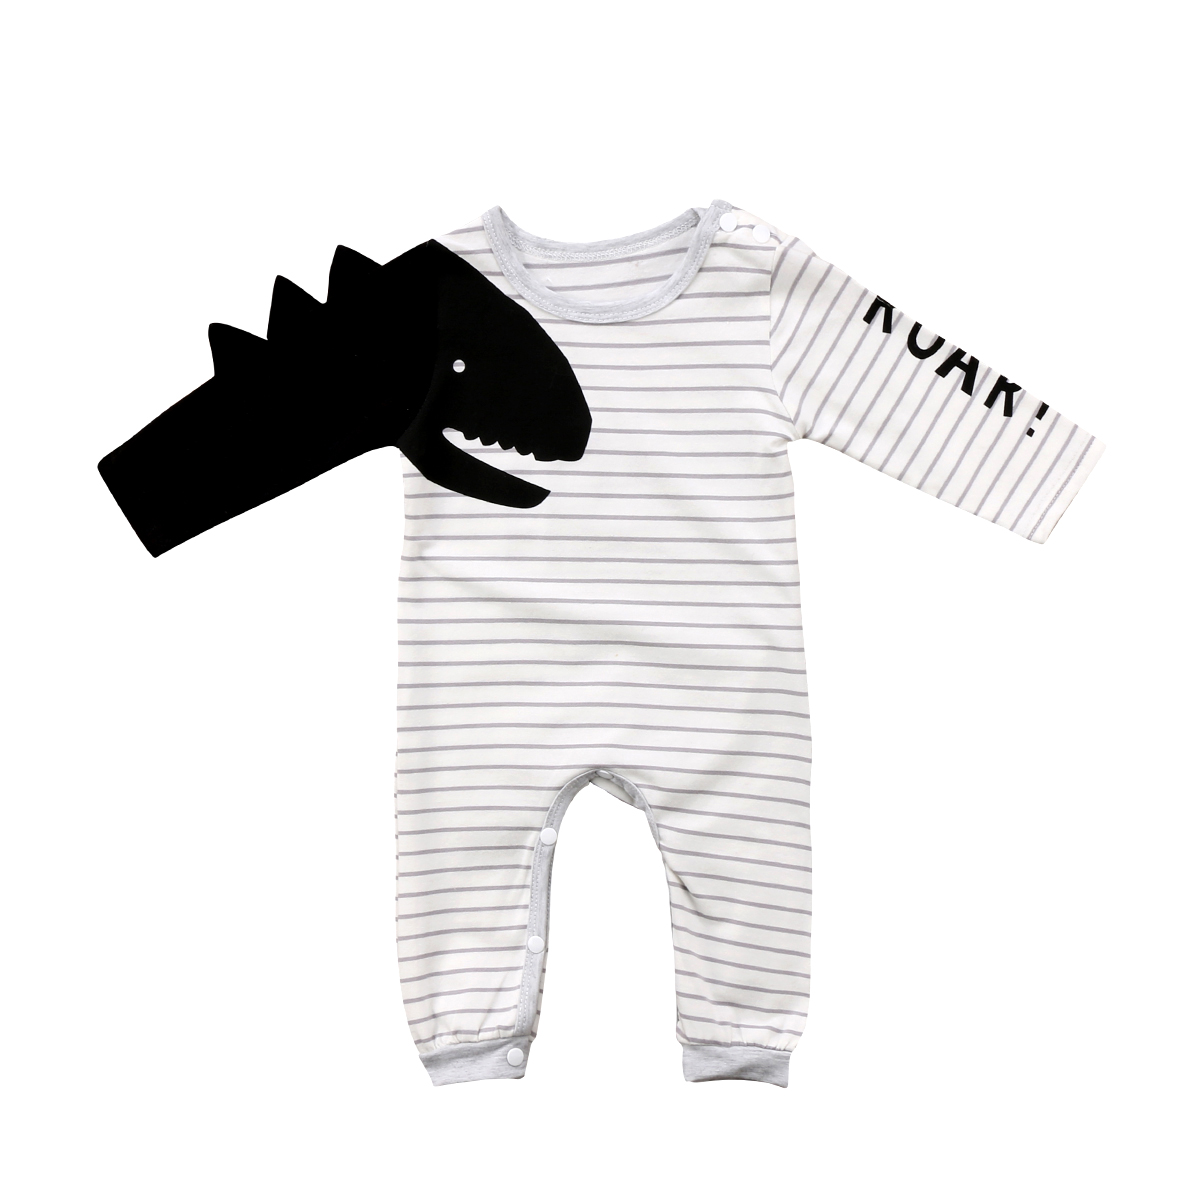 Newborn Baby Boy Girls Clothing Striped Romper Long Sleeve Cotton Cute Animals Jumpsuit Outfits Clothes коляска 2 в 1 riko fox 02 серый желтый